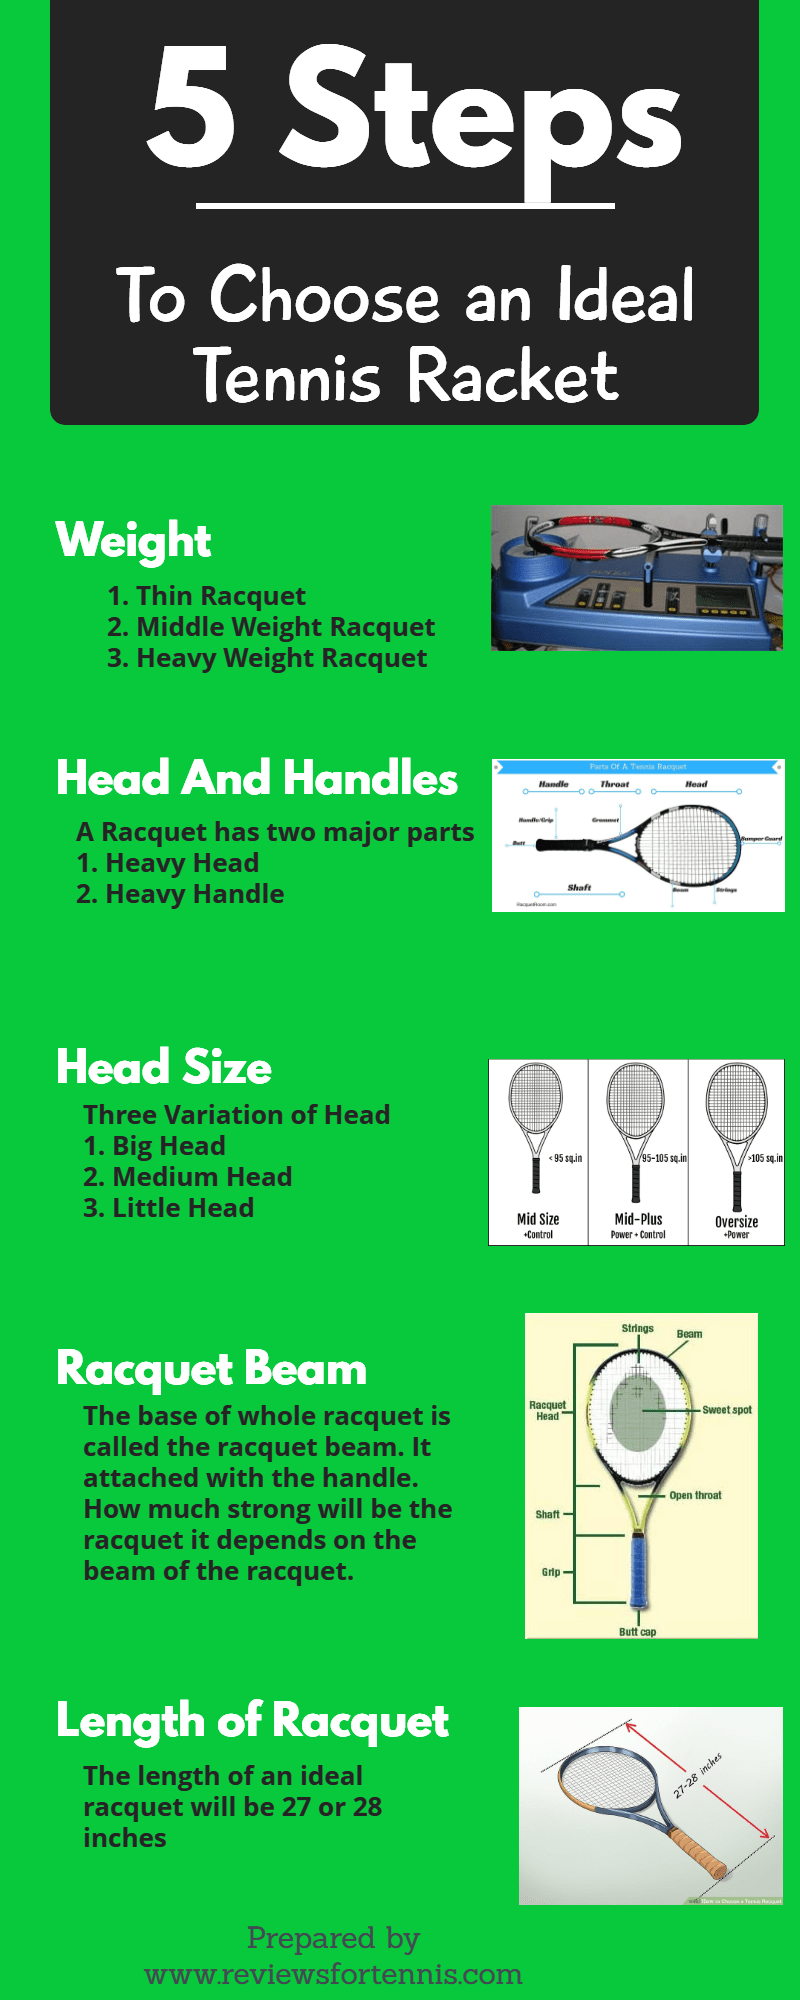 5 Steps To Choose A Tennis Racket